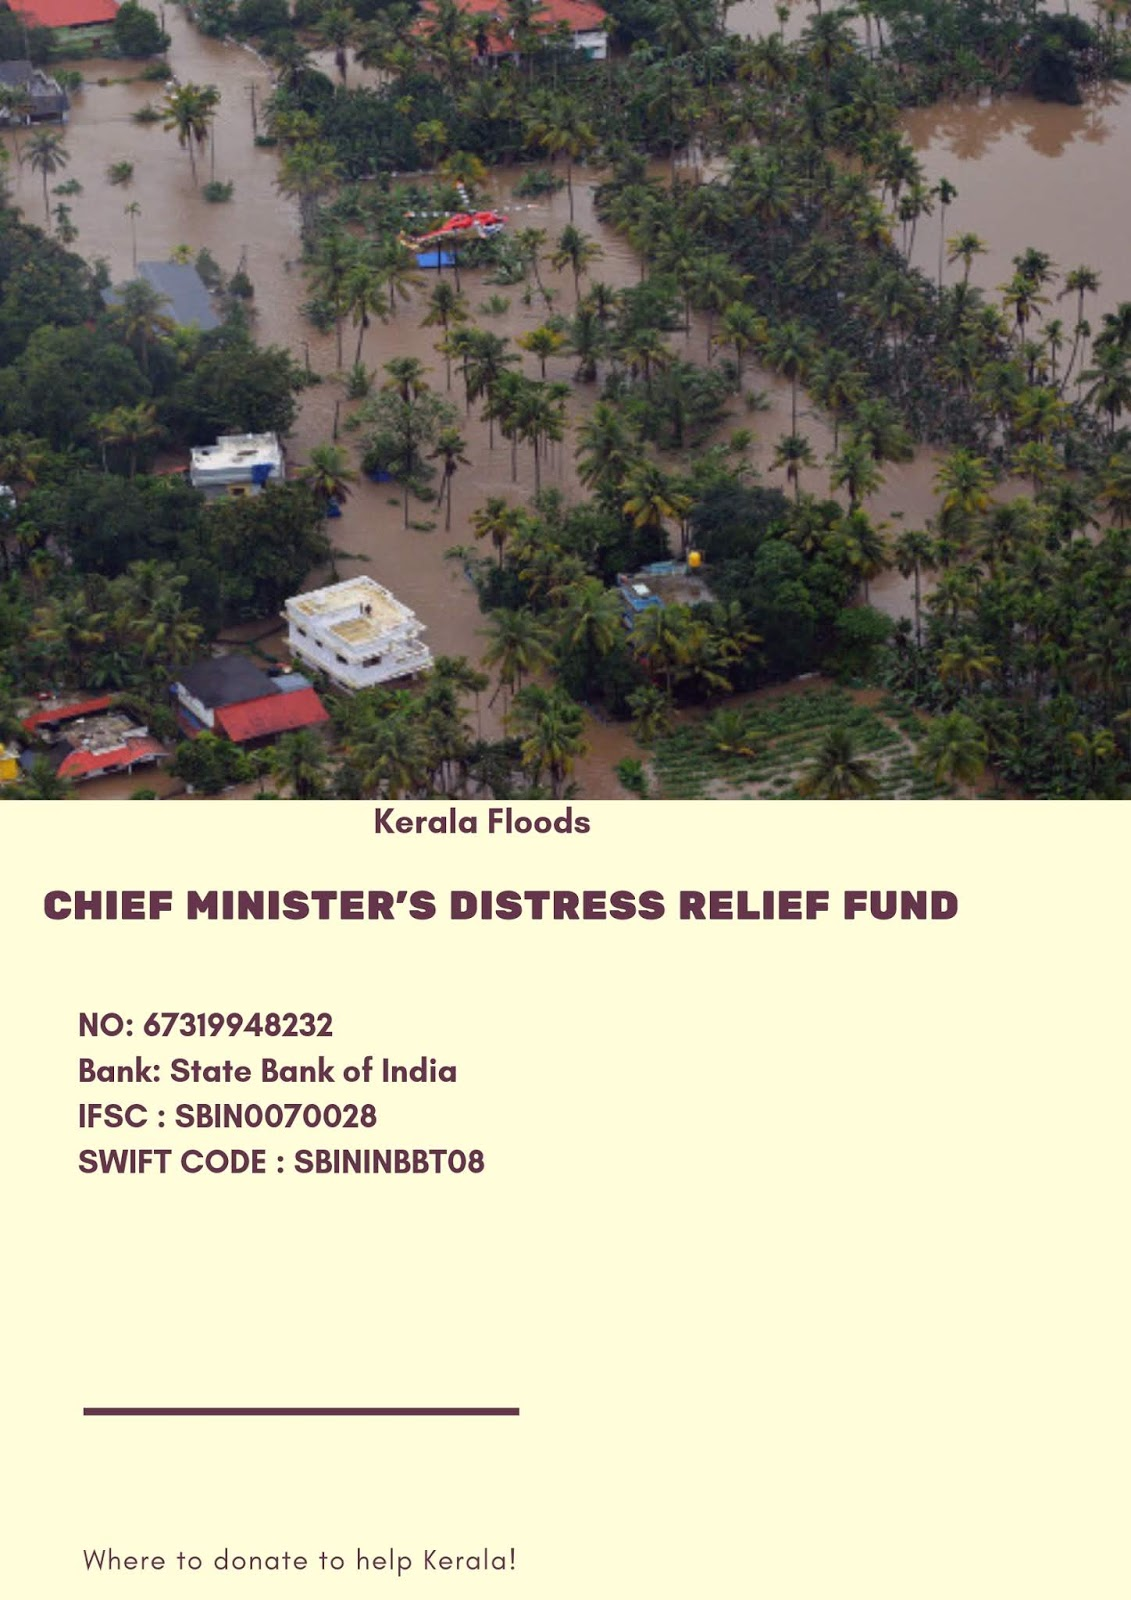 fund raising at the time of flooding